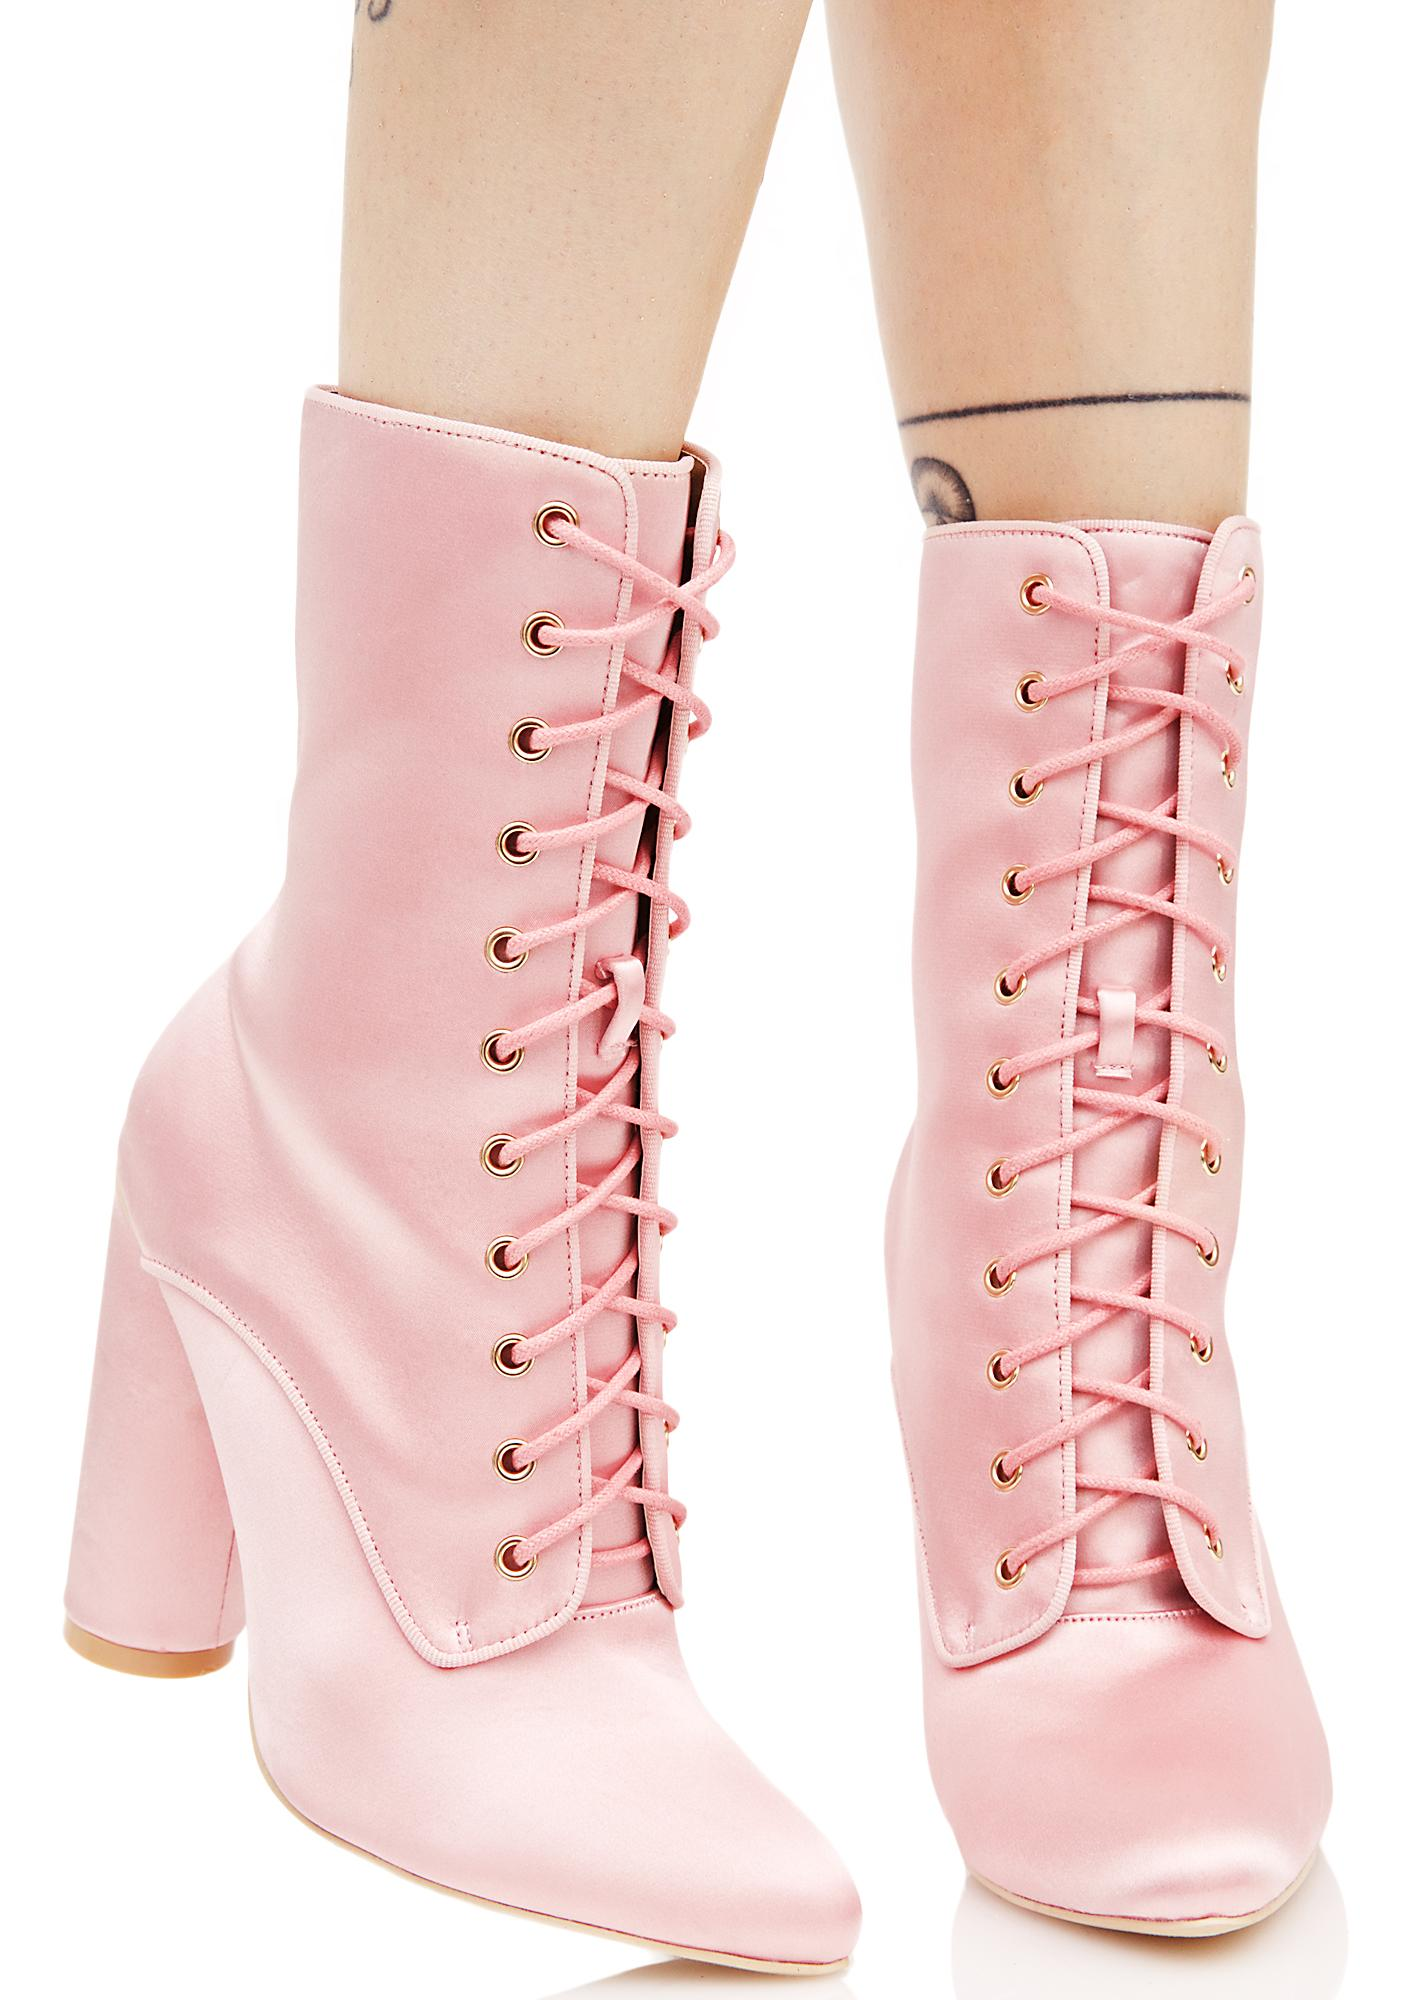 So Posh Lace-Up Boots